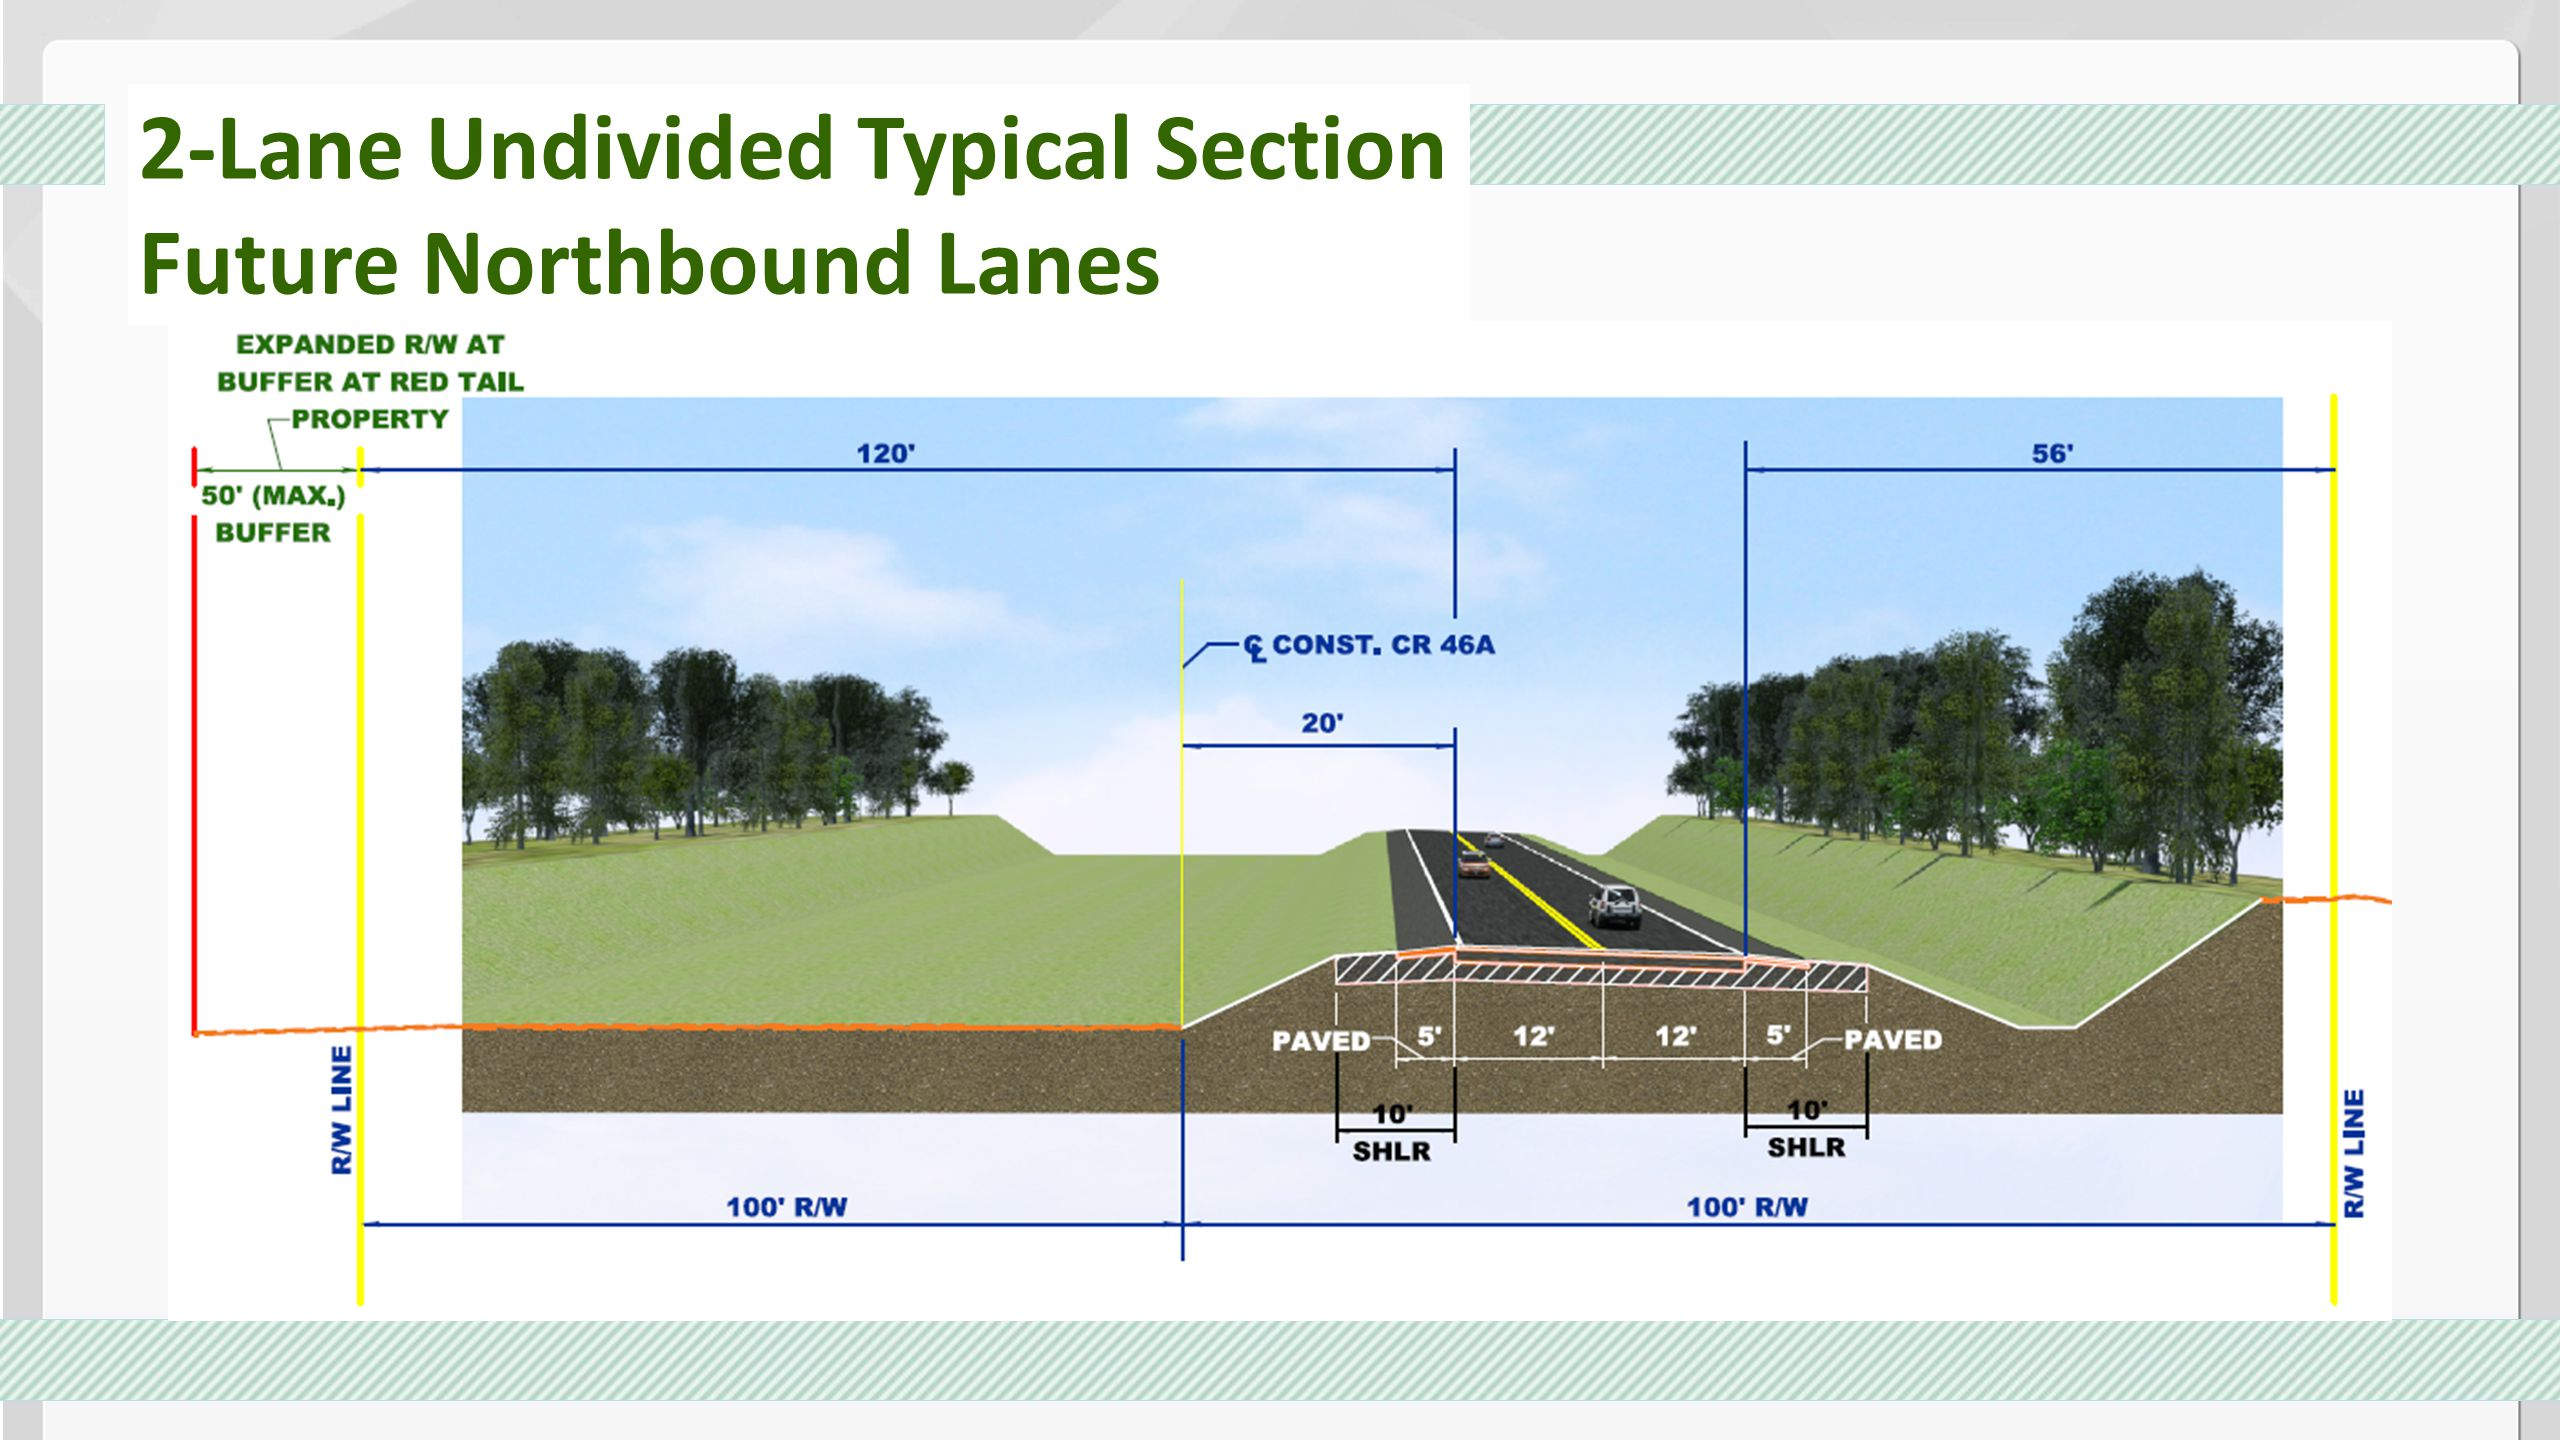 2-Lane Undivided Typical Section